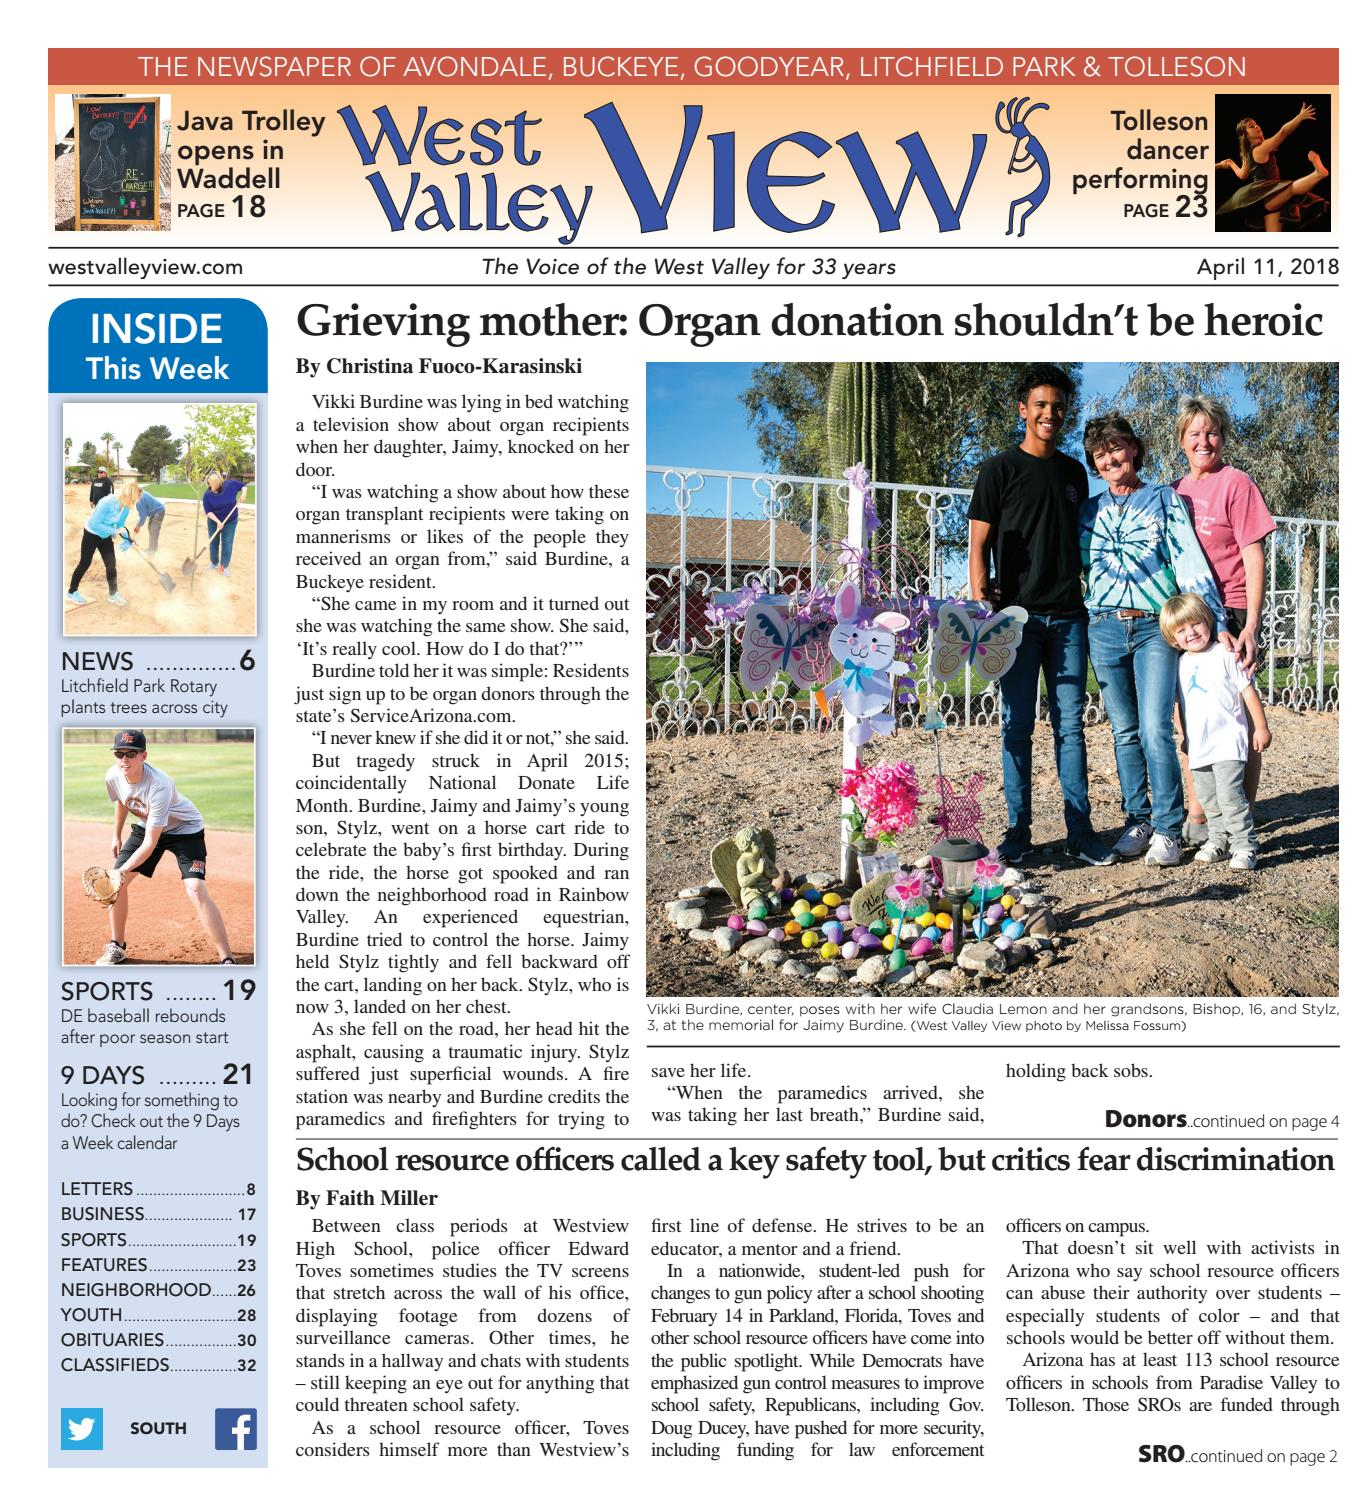 West Valley View South April 11 2018 by Times Media Group issuu